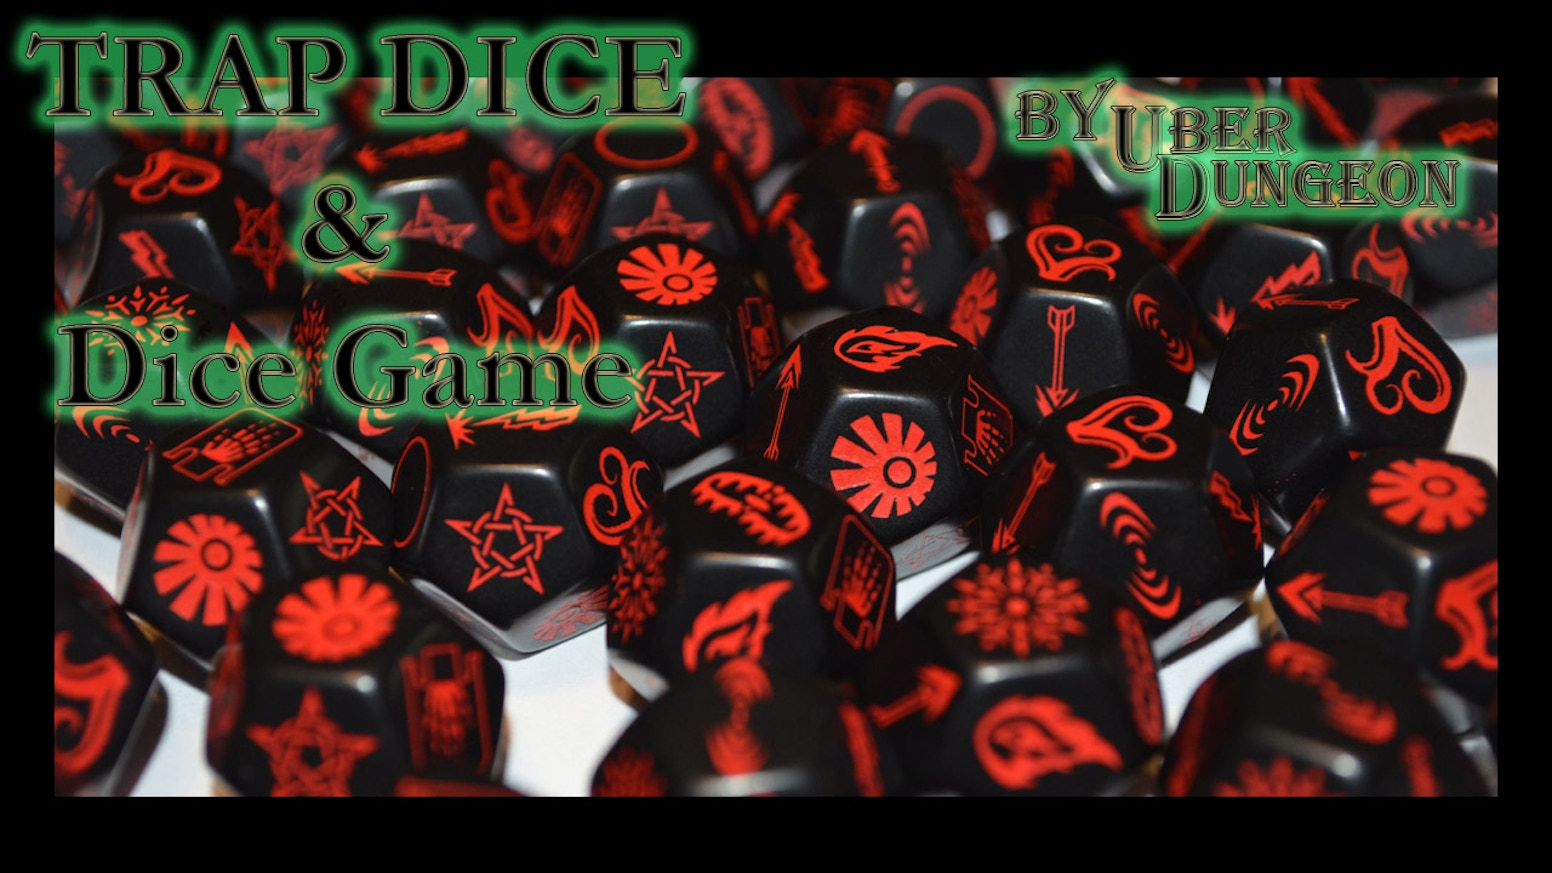 Don't just kill them, let the dice decide what kills'em. As a Bonus Get the game TRAPPED free, a Fast paced Dice game for 2-8 Players.